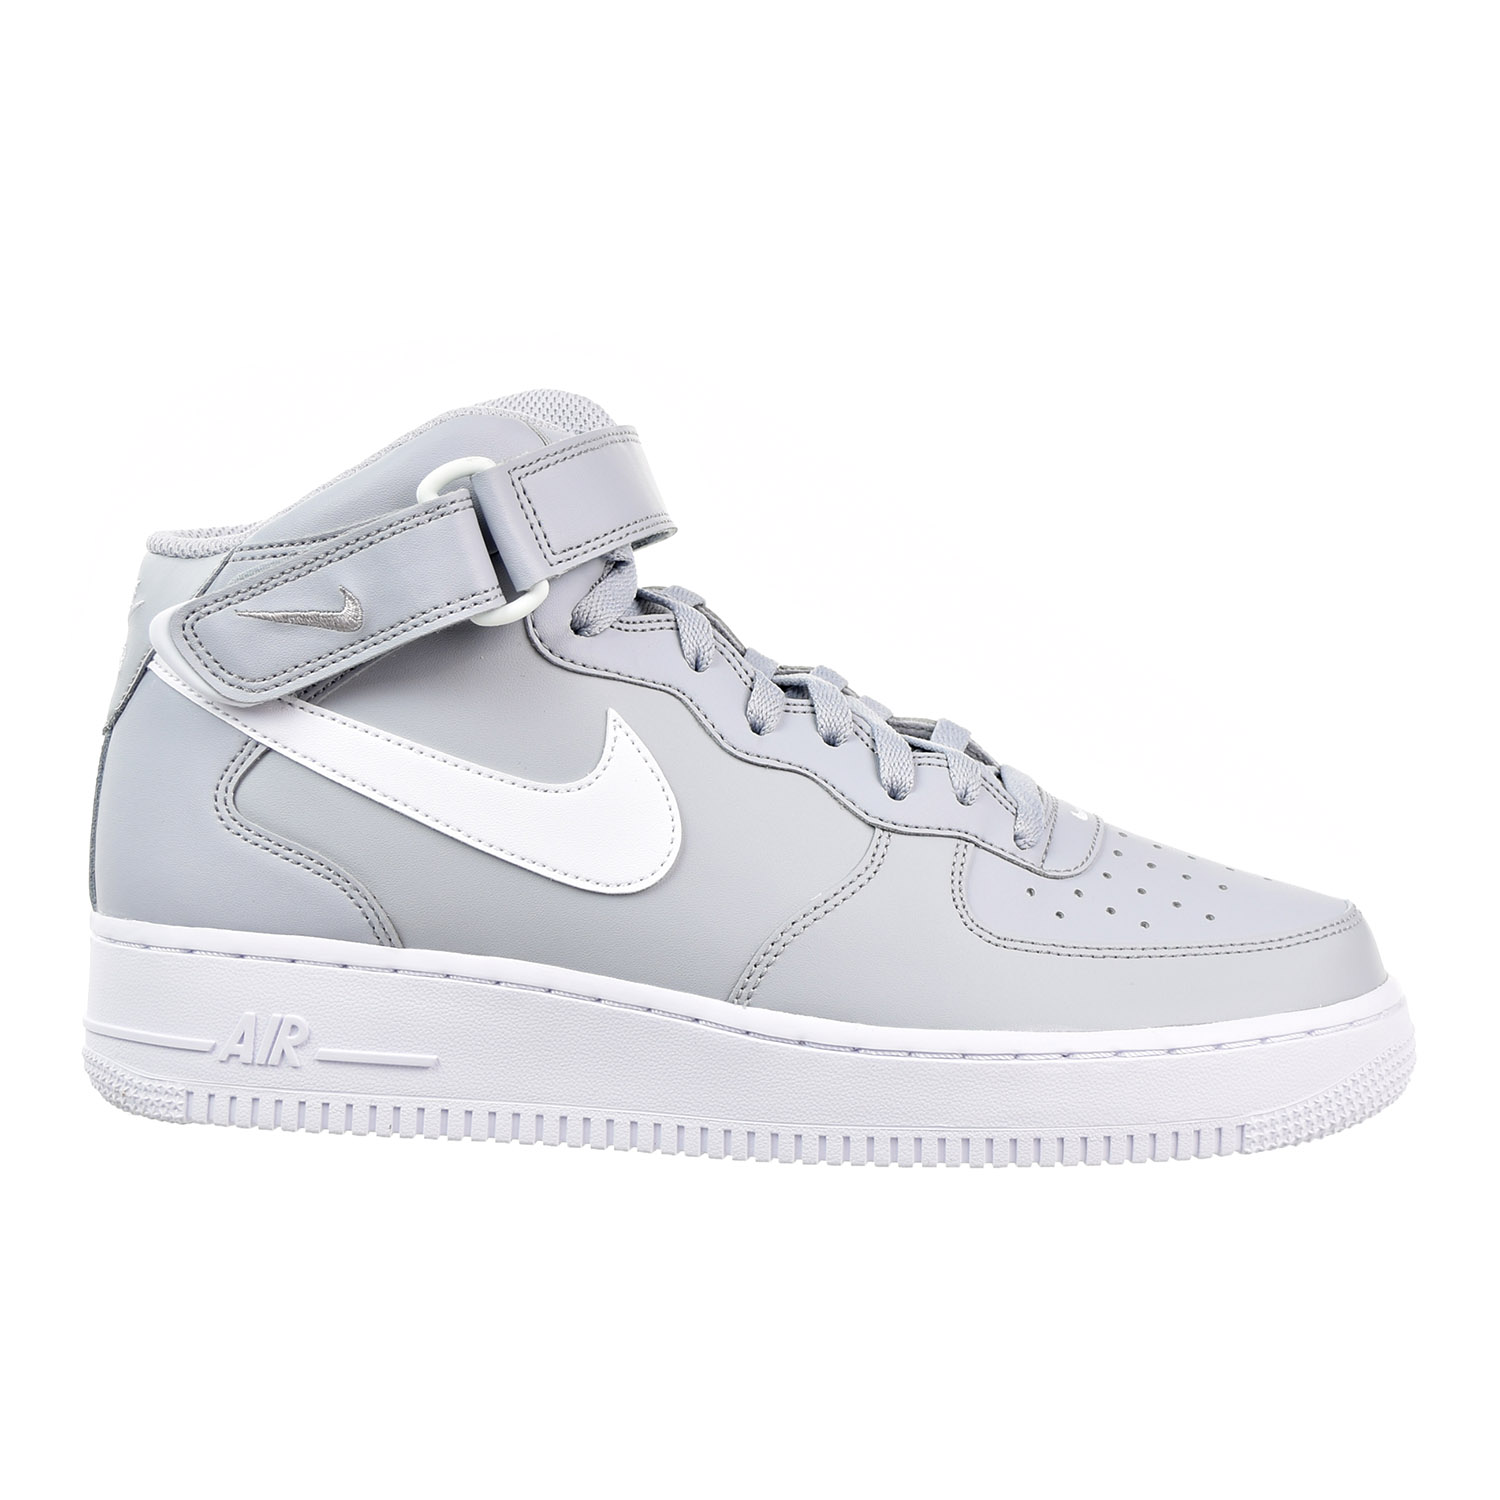 Nike Lab Air Force 1 Mid 07 Men's Shoe Wolf Grey/White 31...